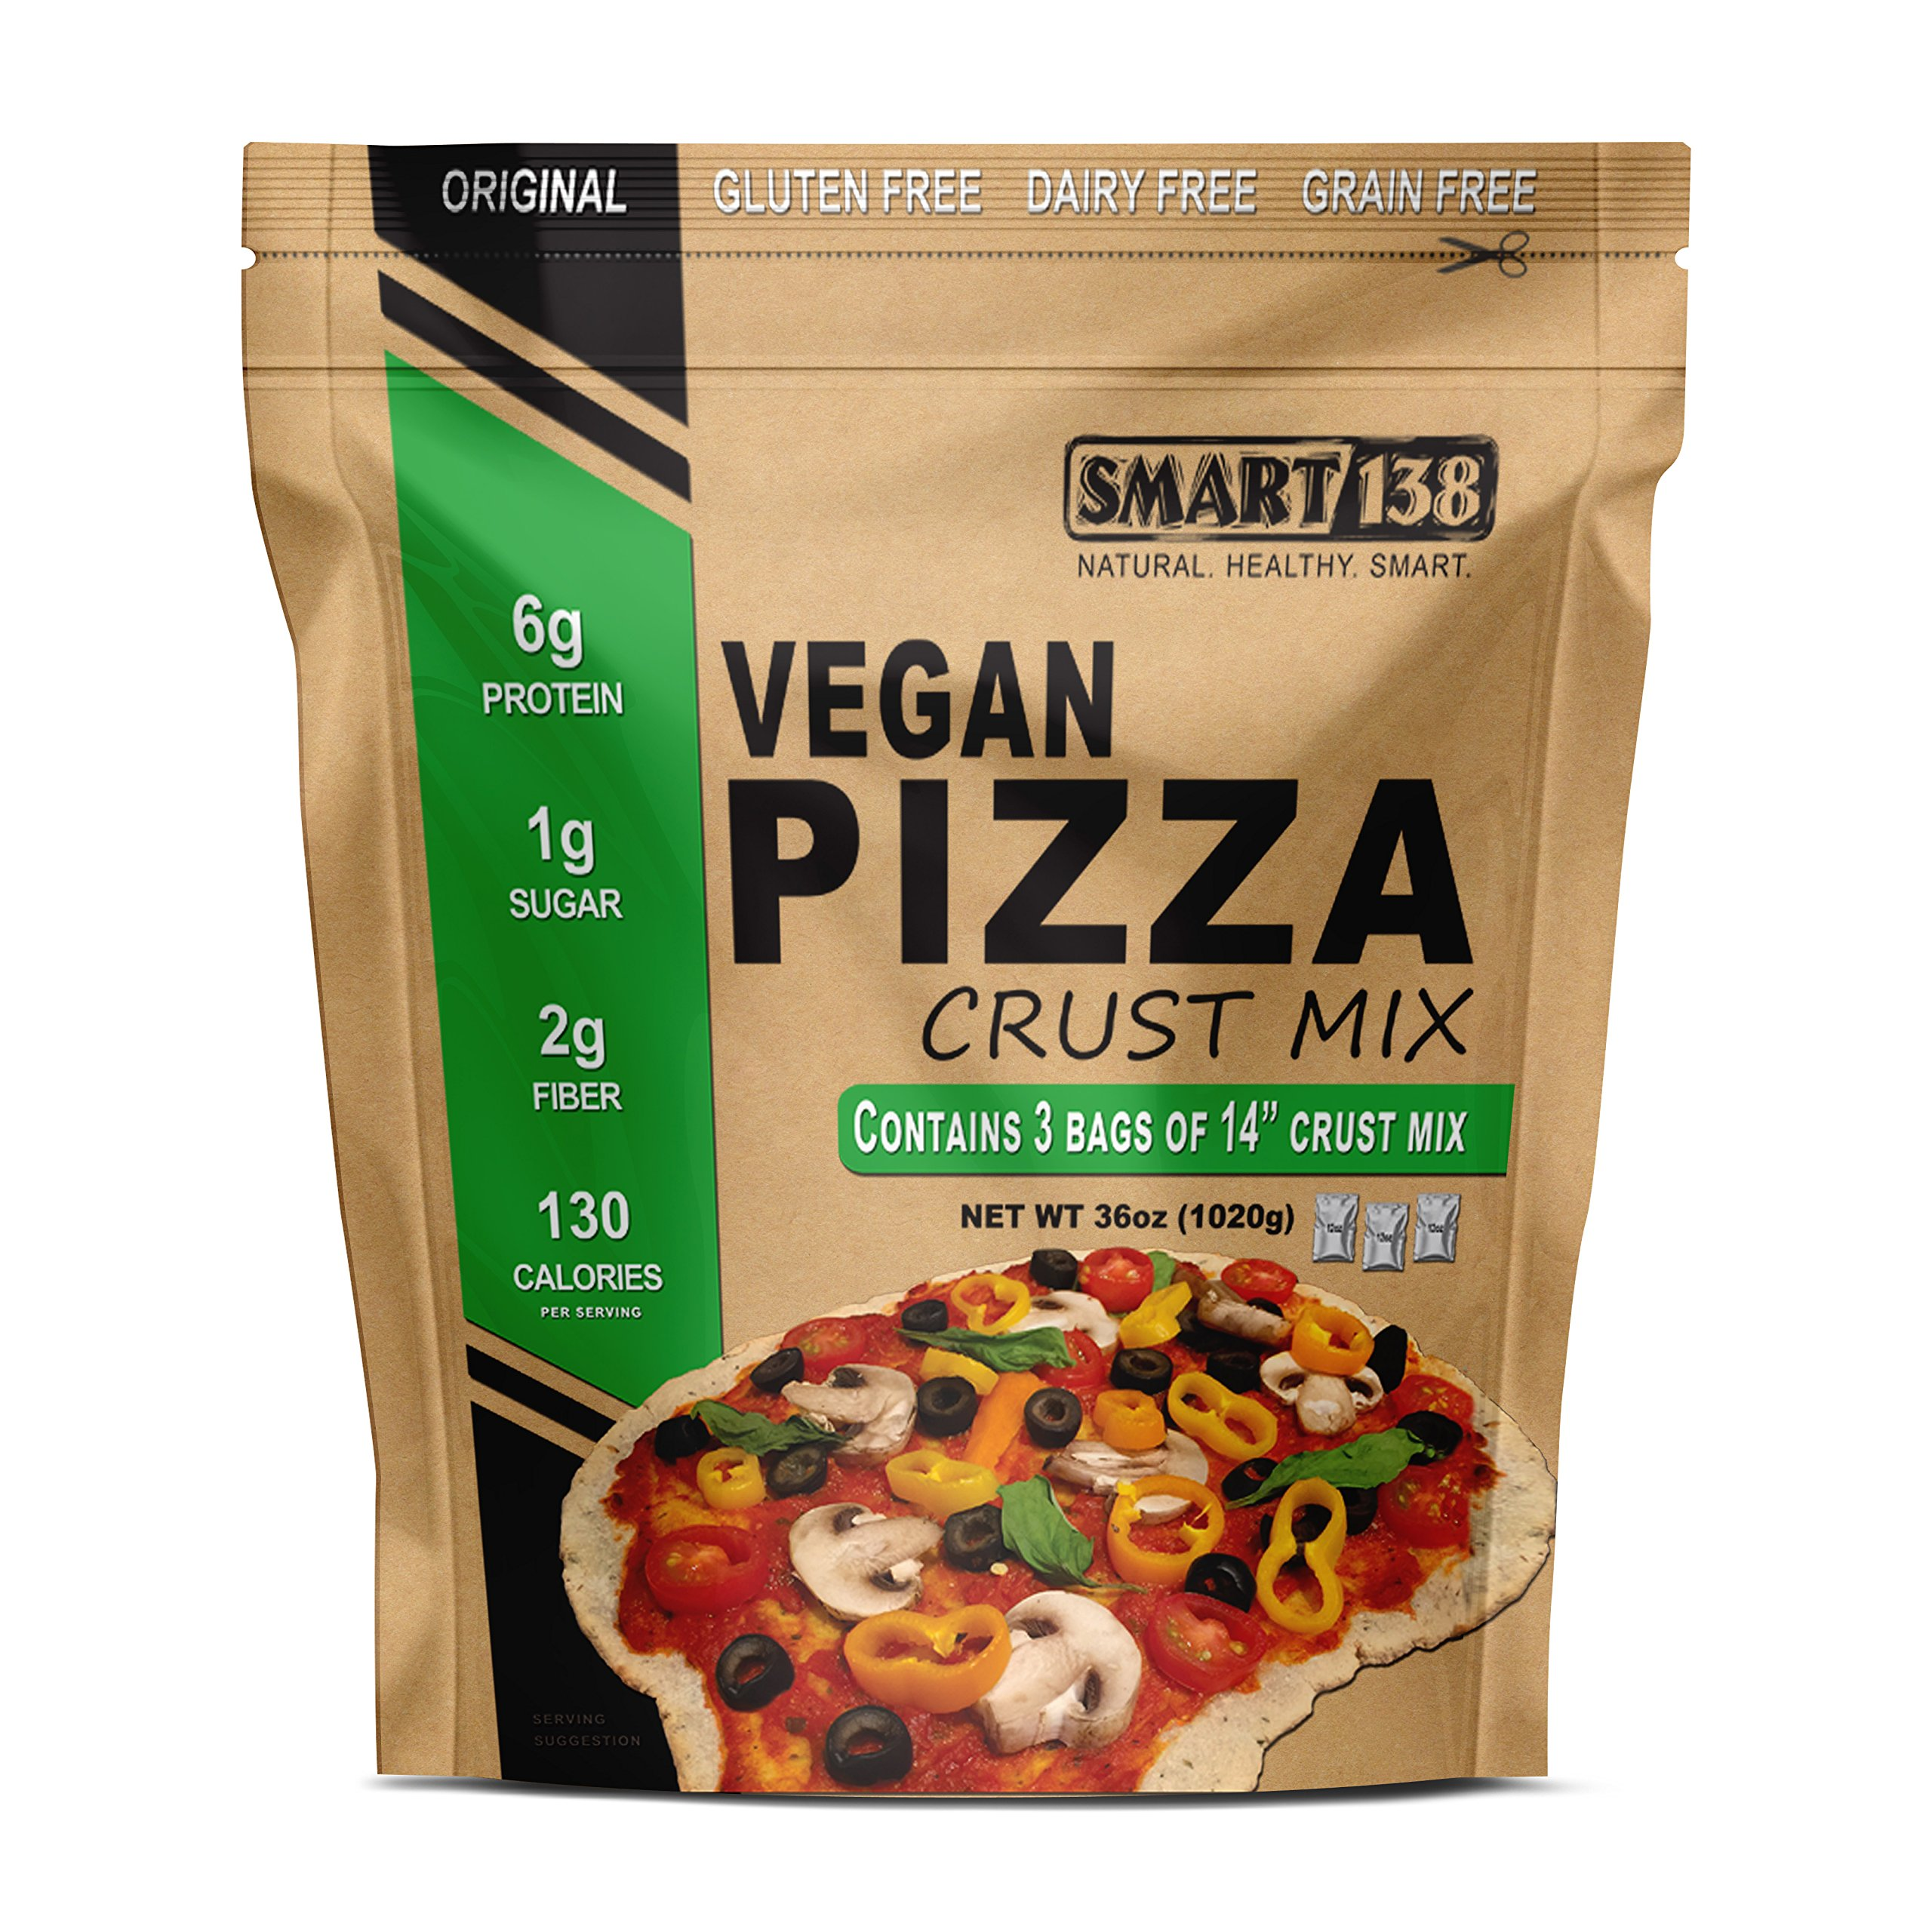 Vegan Pizza Crust Mix // Just Add Water // Grain-Free, Gluten-Free, Dairy-Free, Yeast-Free Non-Rising Dough (Original Style, 36oz (3-12oz Packets))